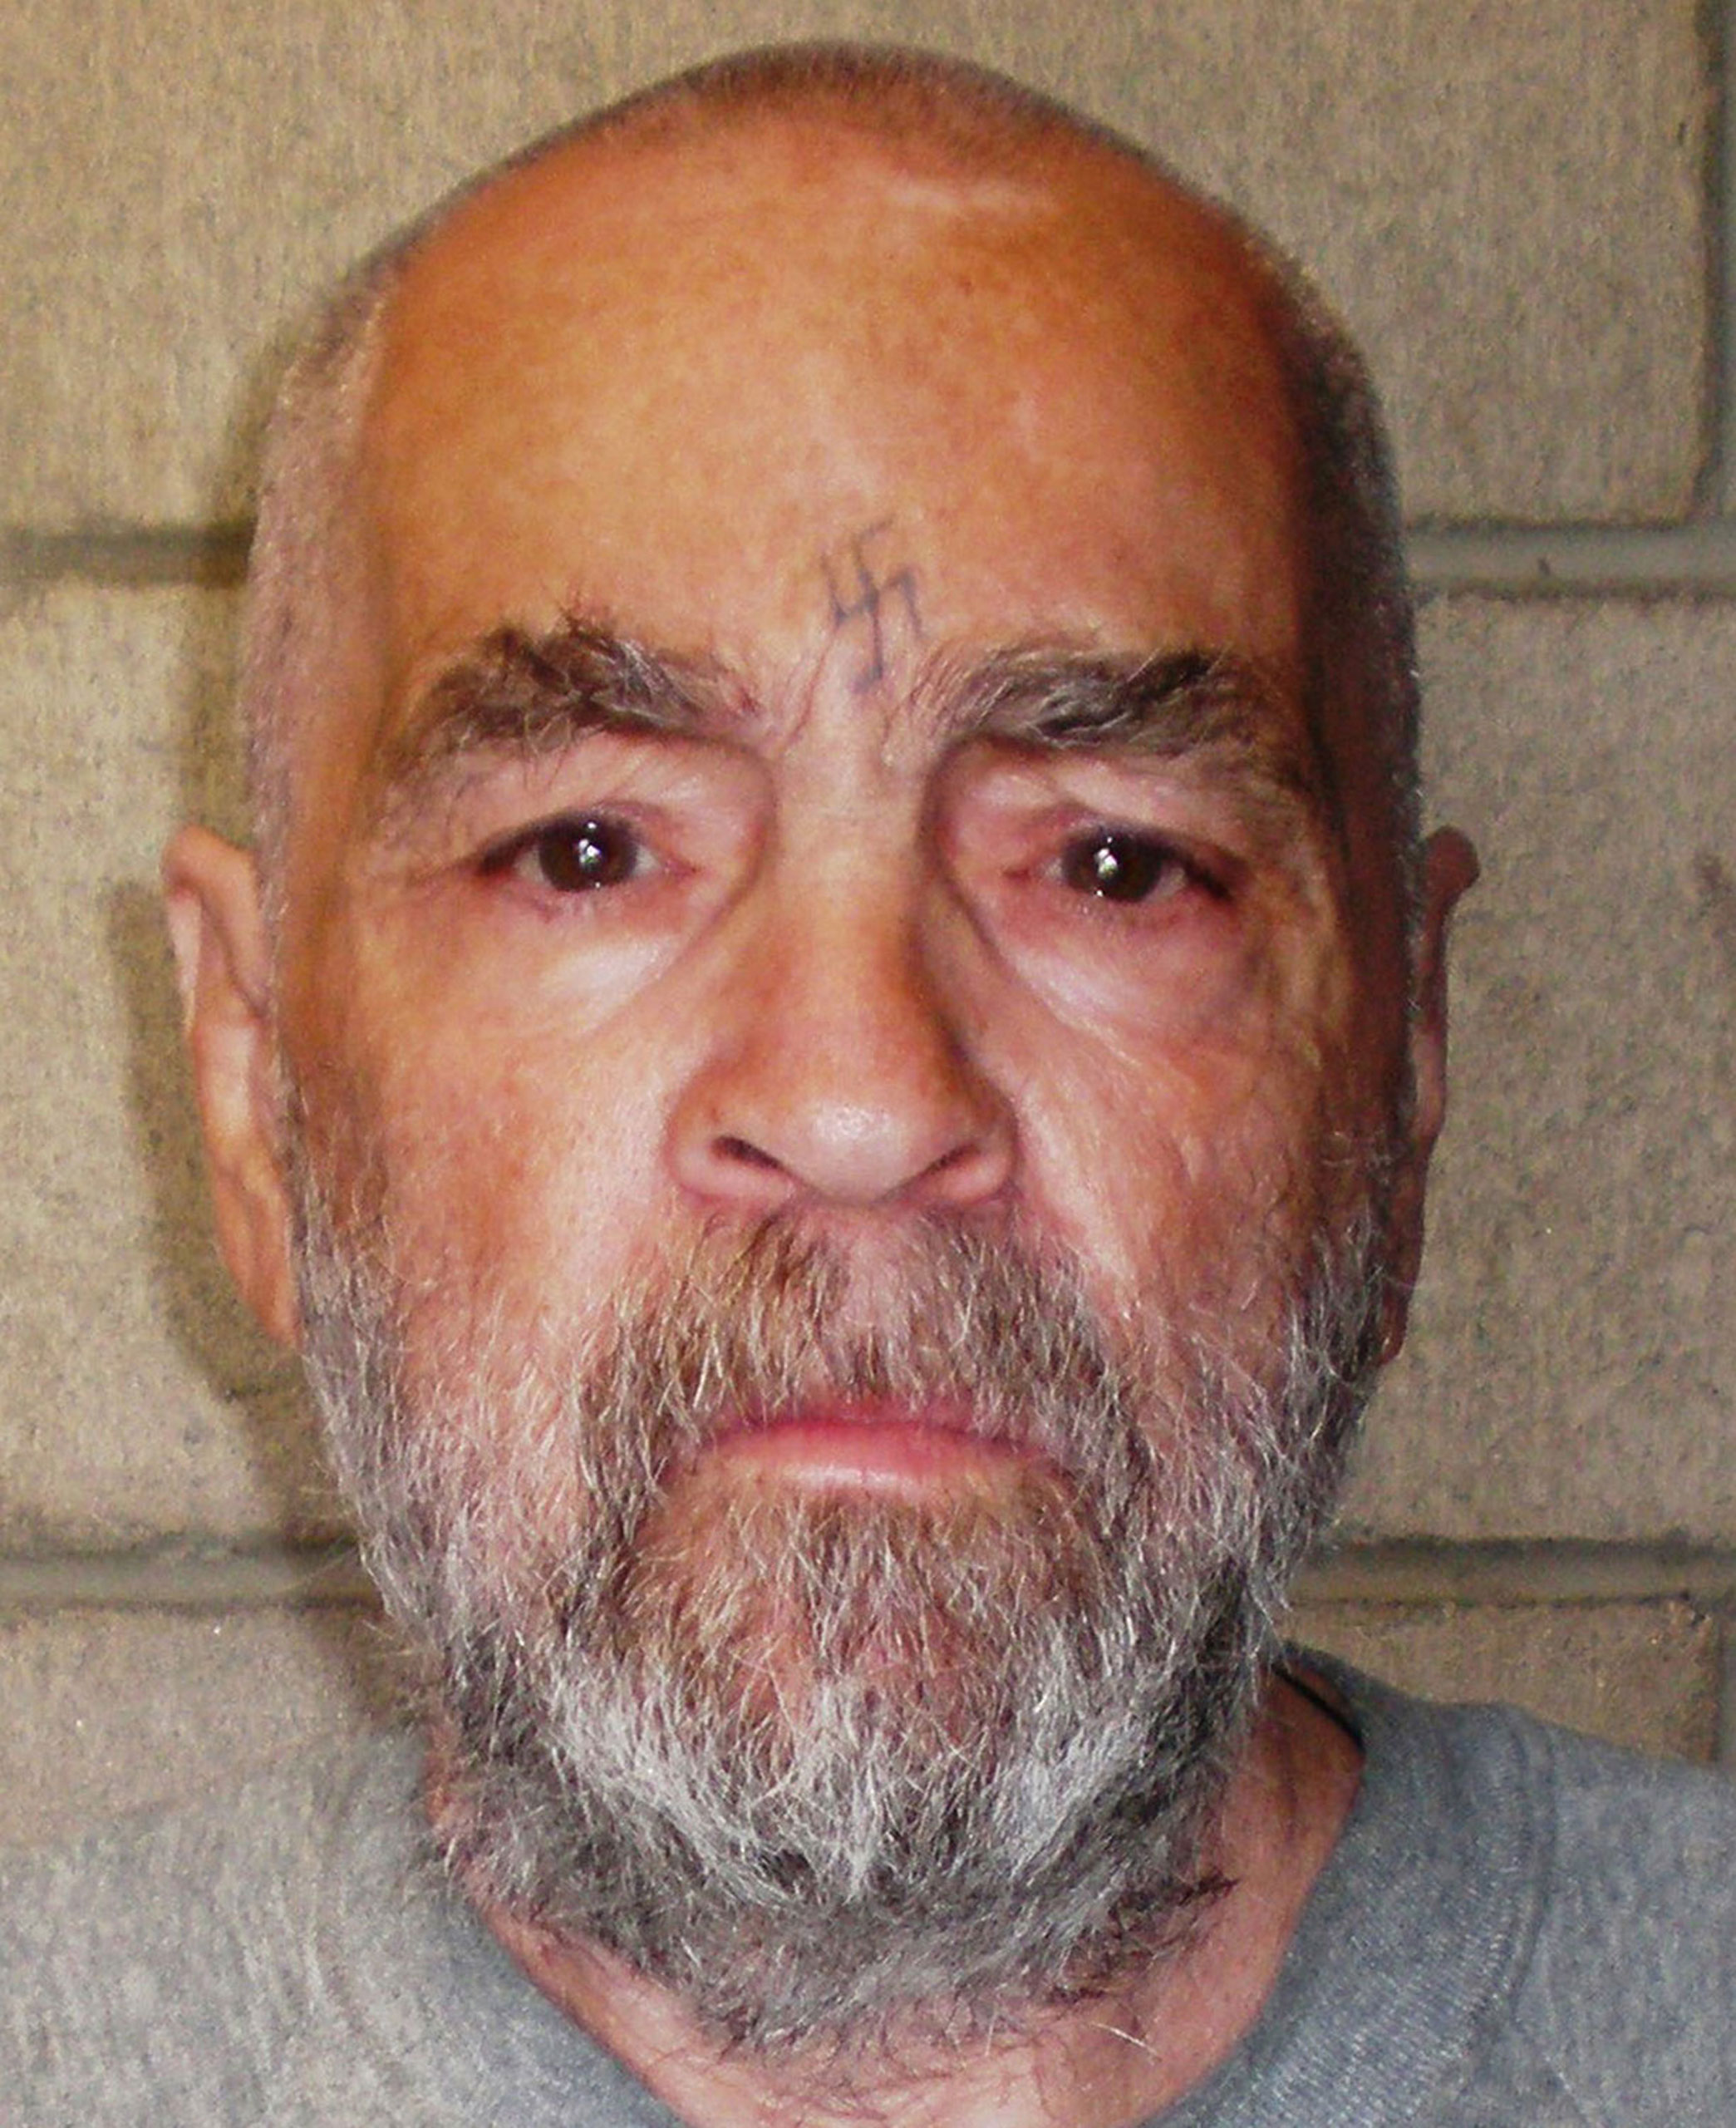 Manson, age 74, at Corcoran State Prison in California on March 18, 2009. The picture was taken as a regular update of the prison's files.